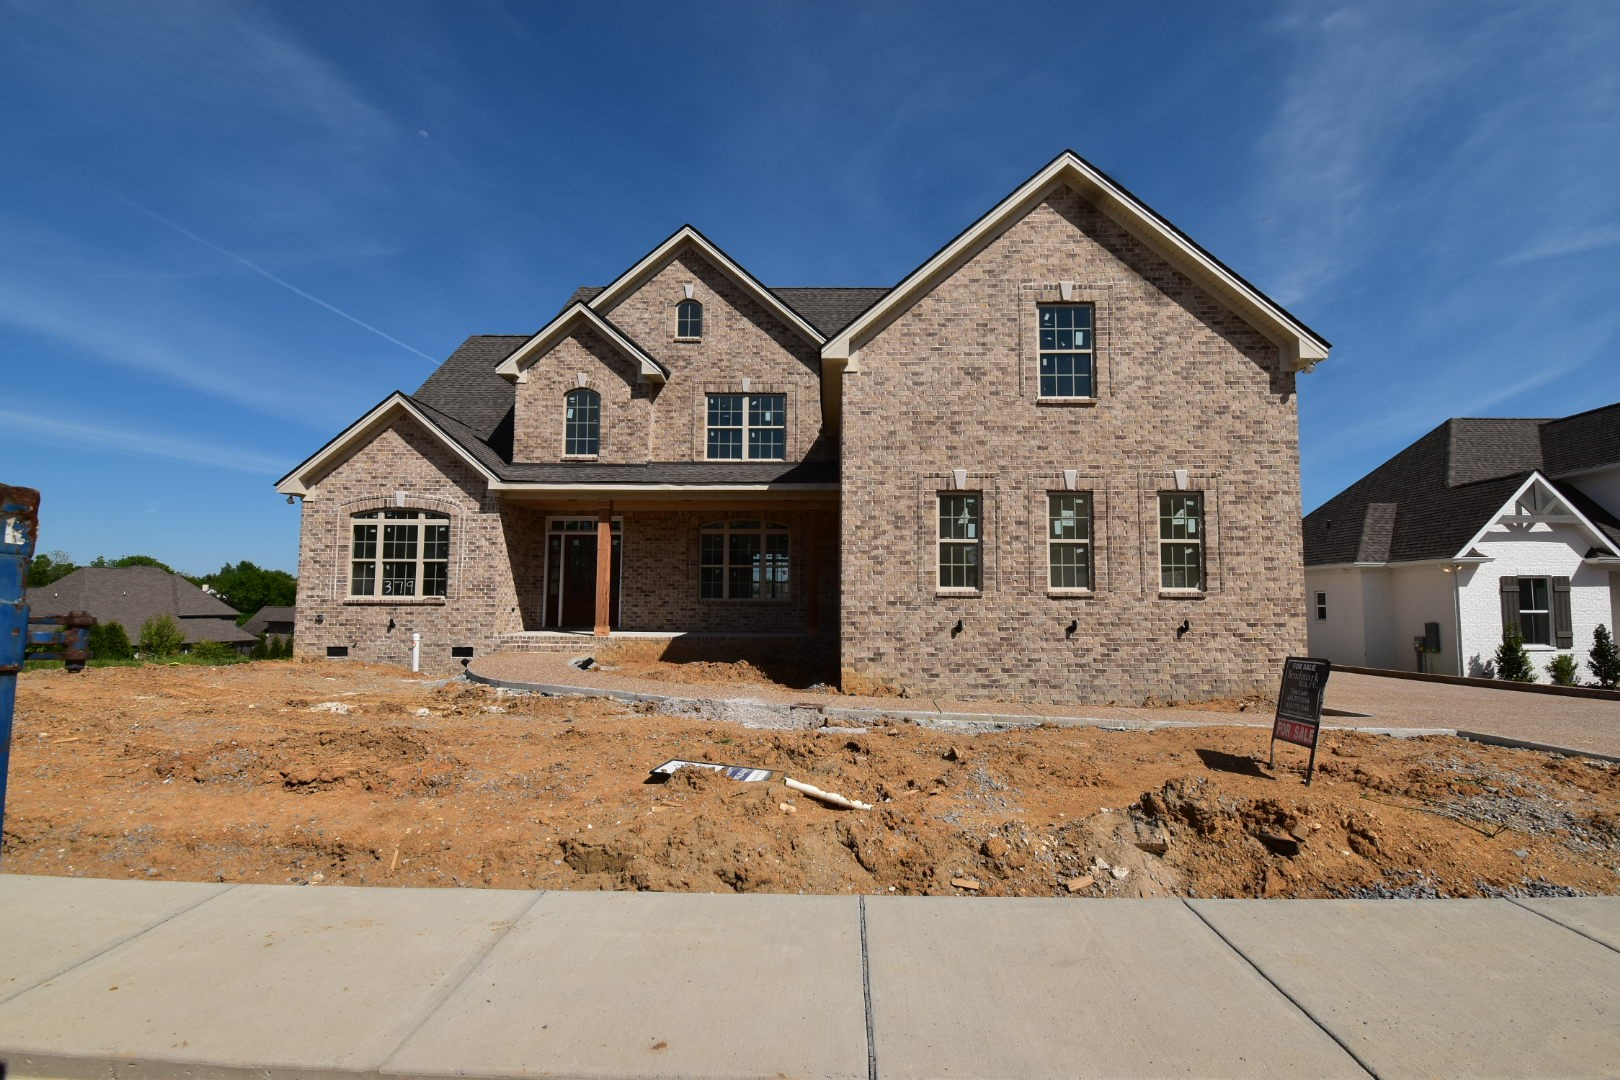 All Brick Home by RG Custom Homes. Gorgeous 2 Two Foyer with Curved staircase; Open two story great room w/ FP and catwalk above; Open Kitchen w/ White cabinetry, SS appliance pkg, Large Island, Granite counters; Master Suite down; Office on main; Large bonus room up; 3 Car Side Entry Garage.